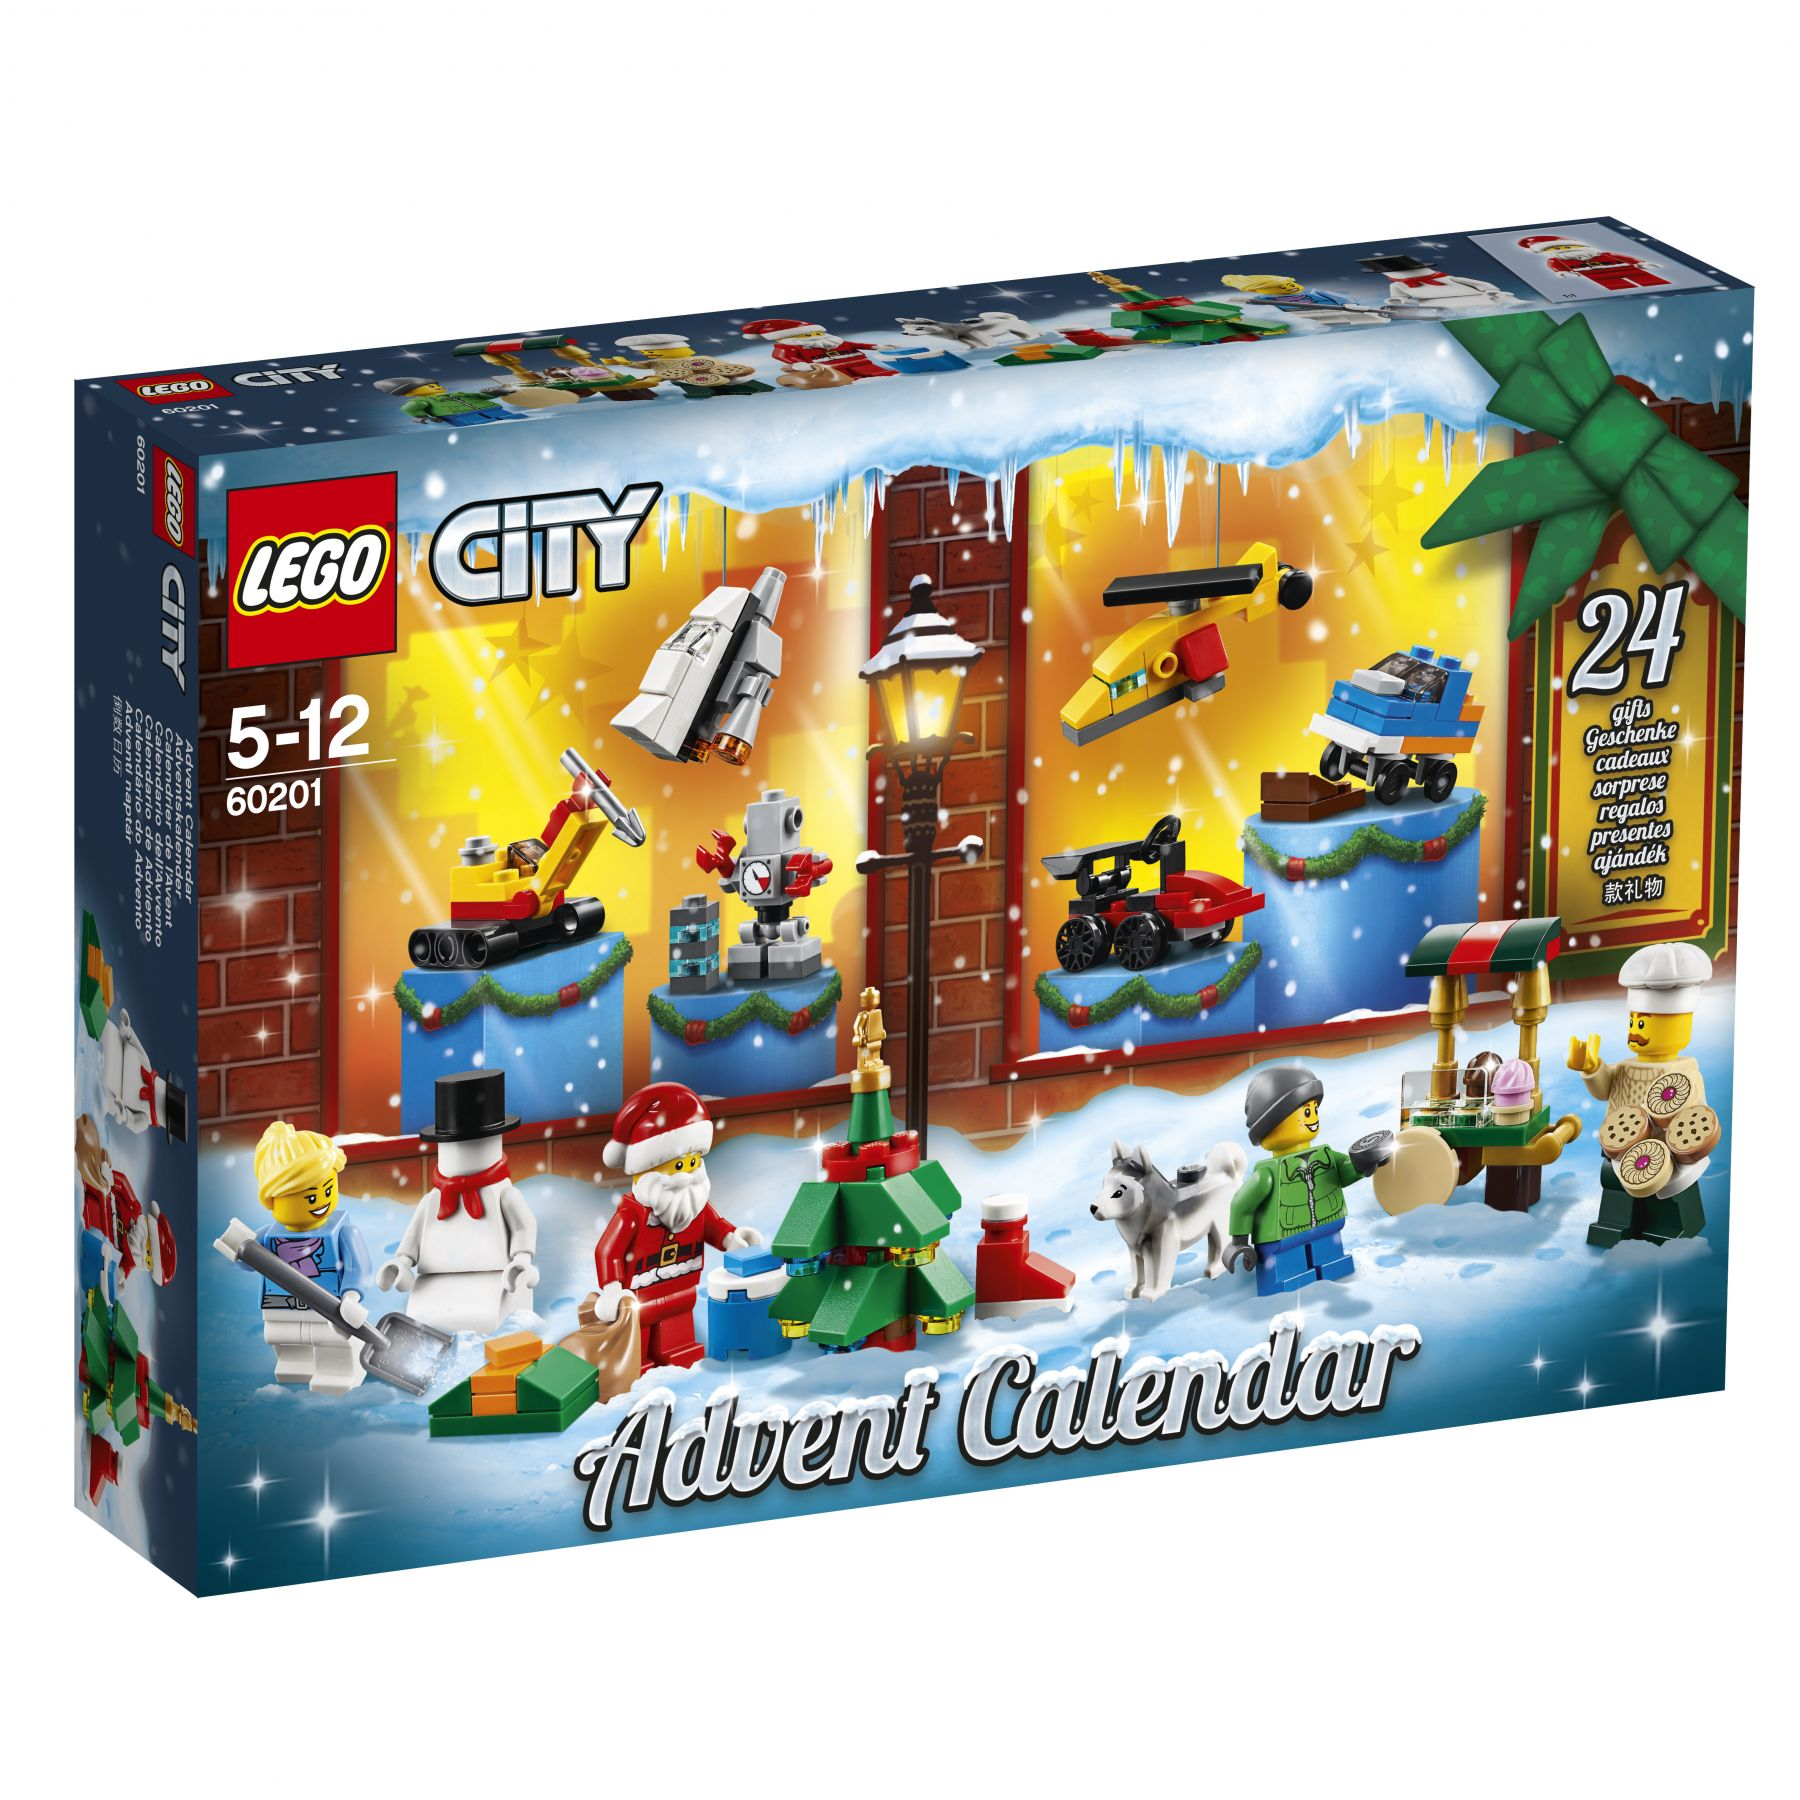 LEGO City 60201 City Adventskalender 2018